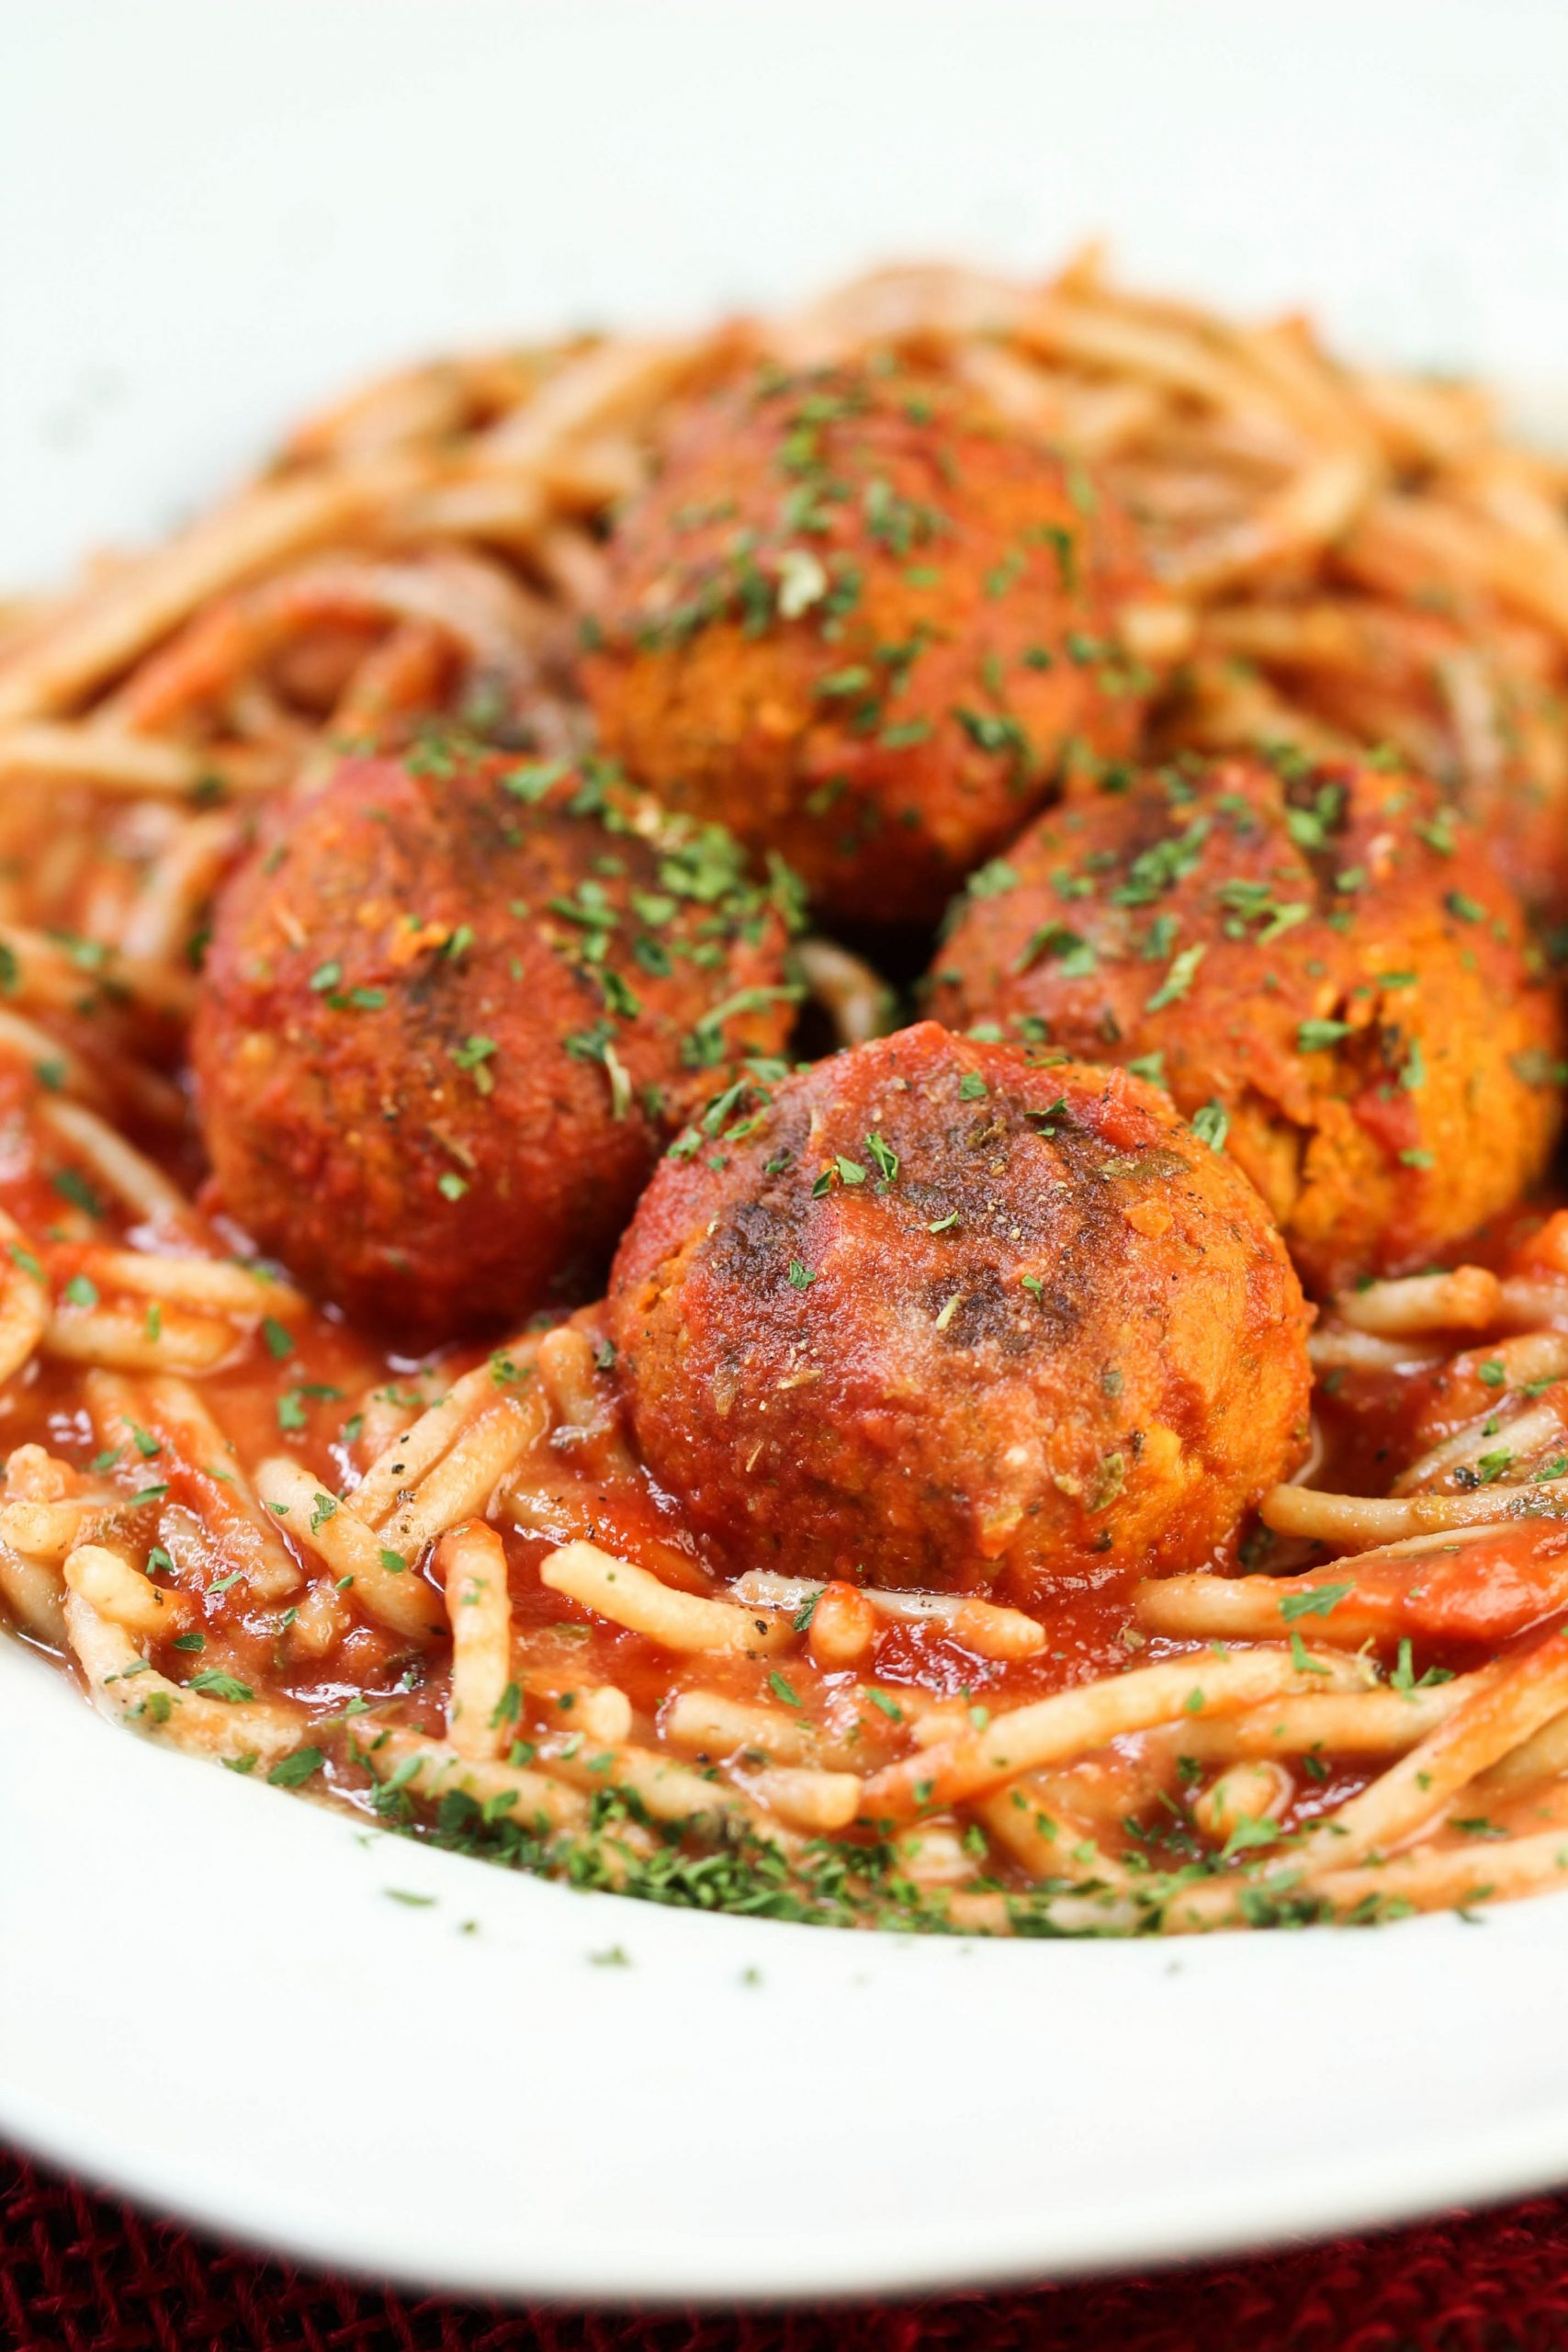 Easy Vegan Meatballs - Recipes Vegetarian Meatballs